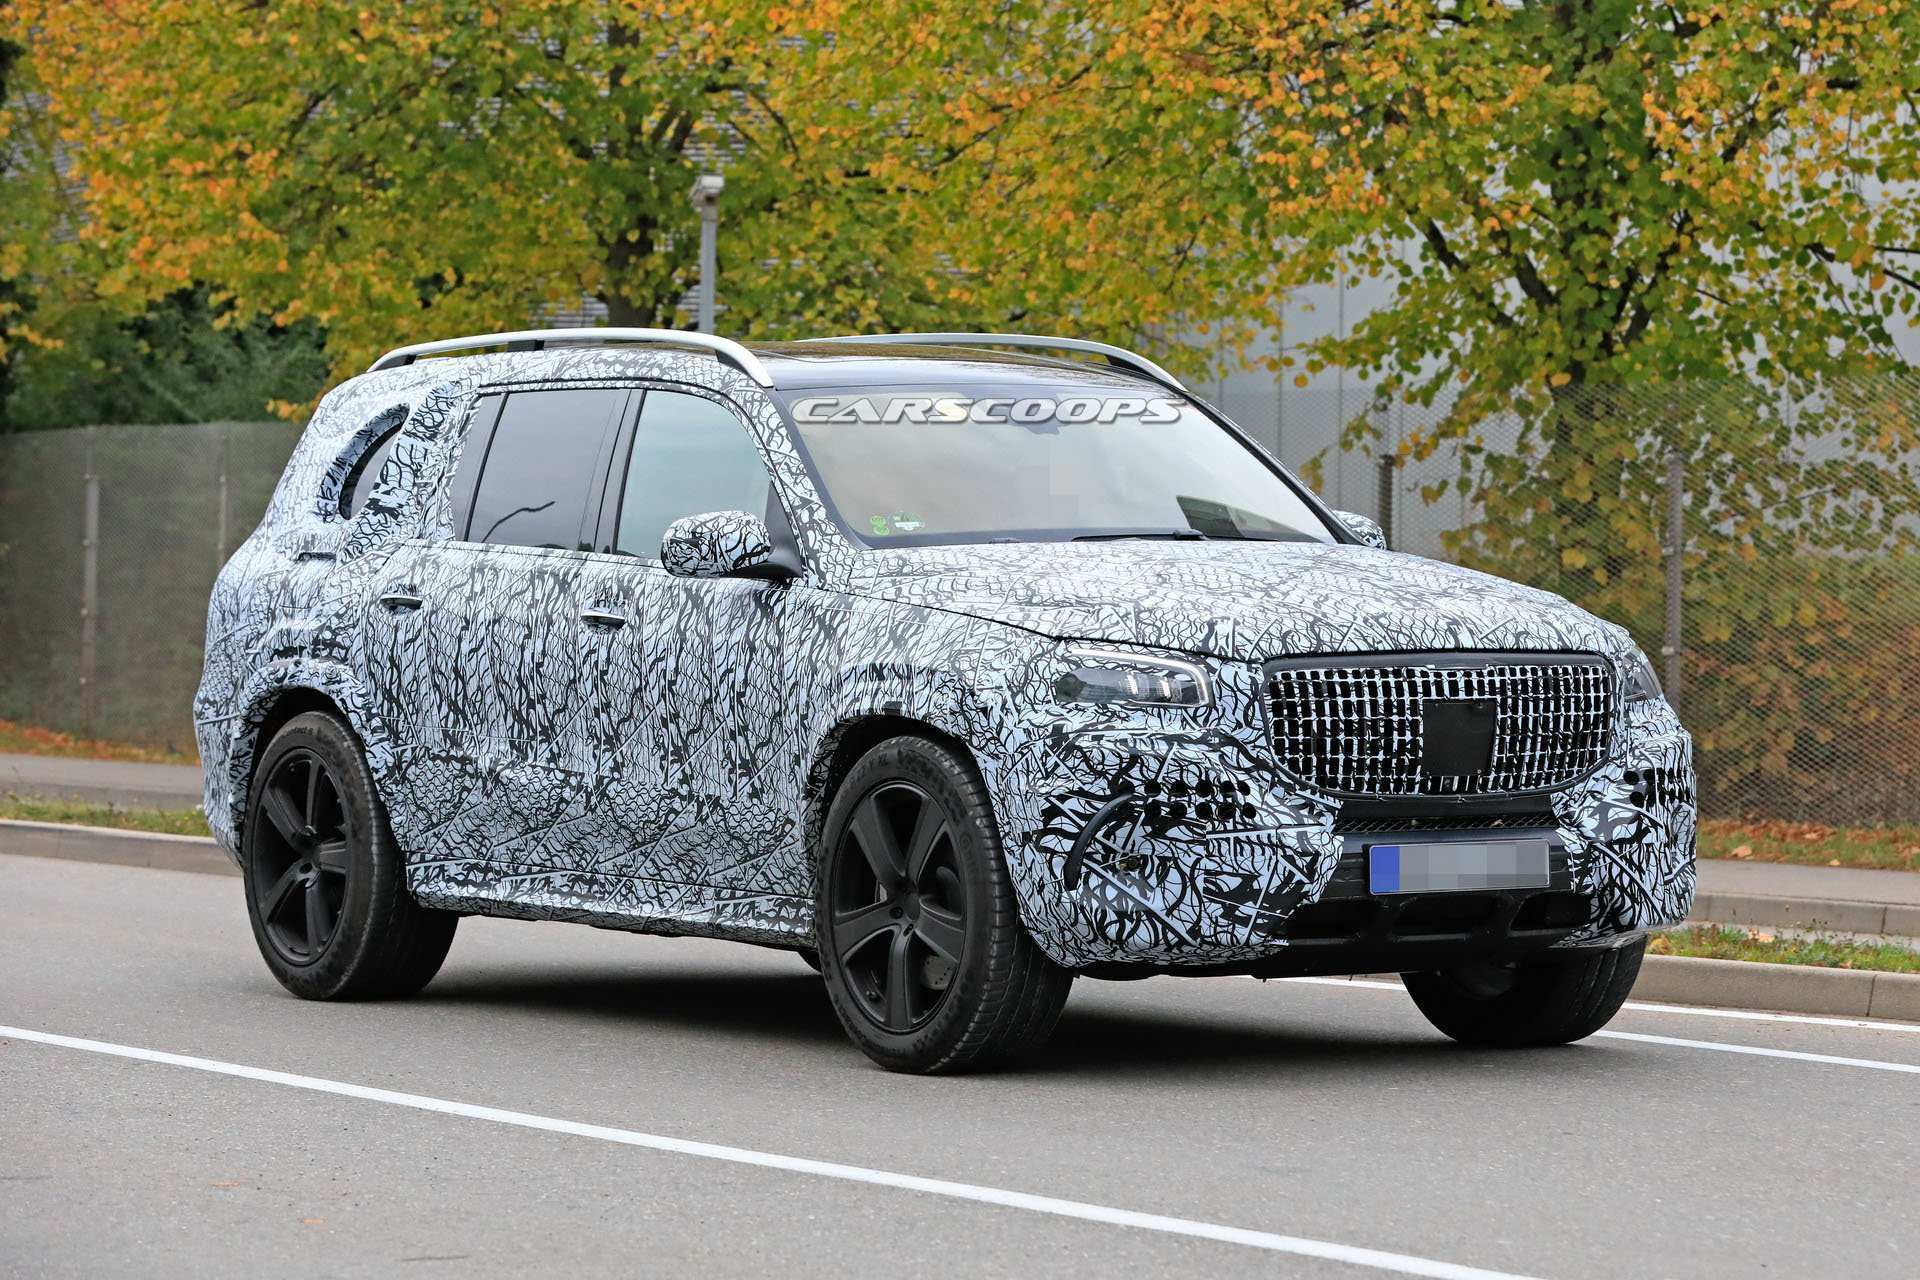 21 Gallery of Mercedes Maybach Gls 2020 Review for Mercedes Maybach Gls 2020